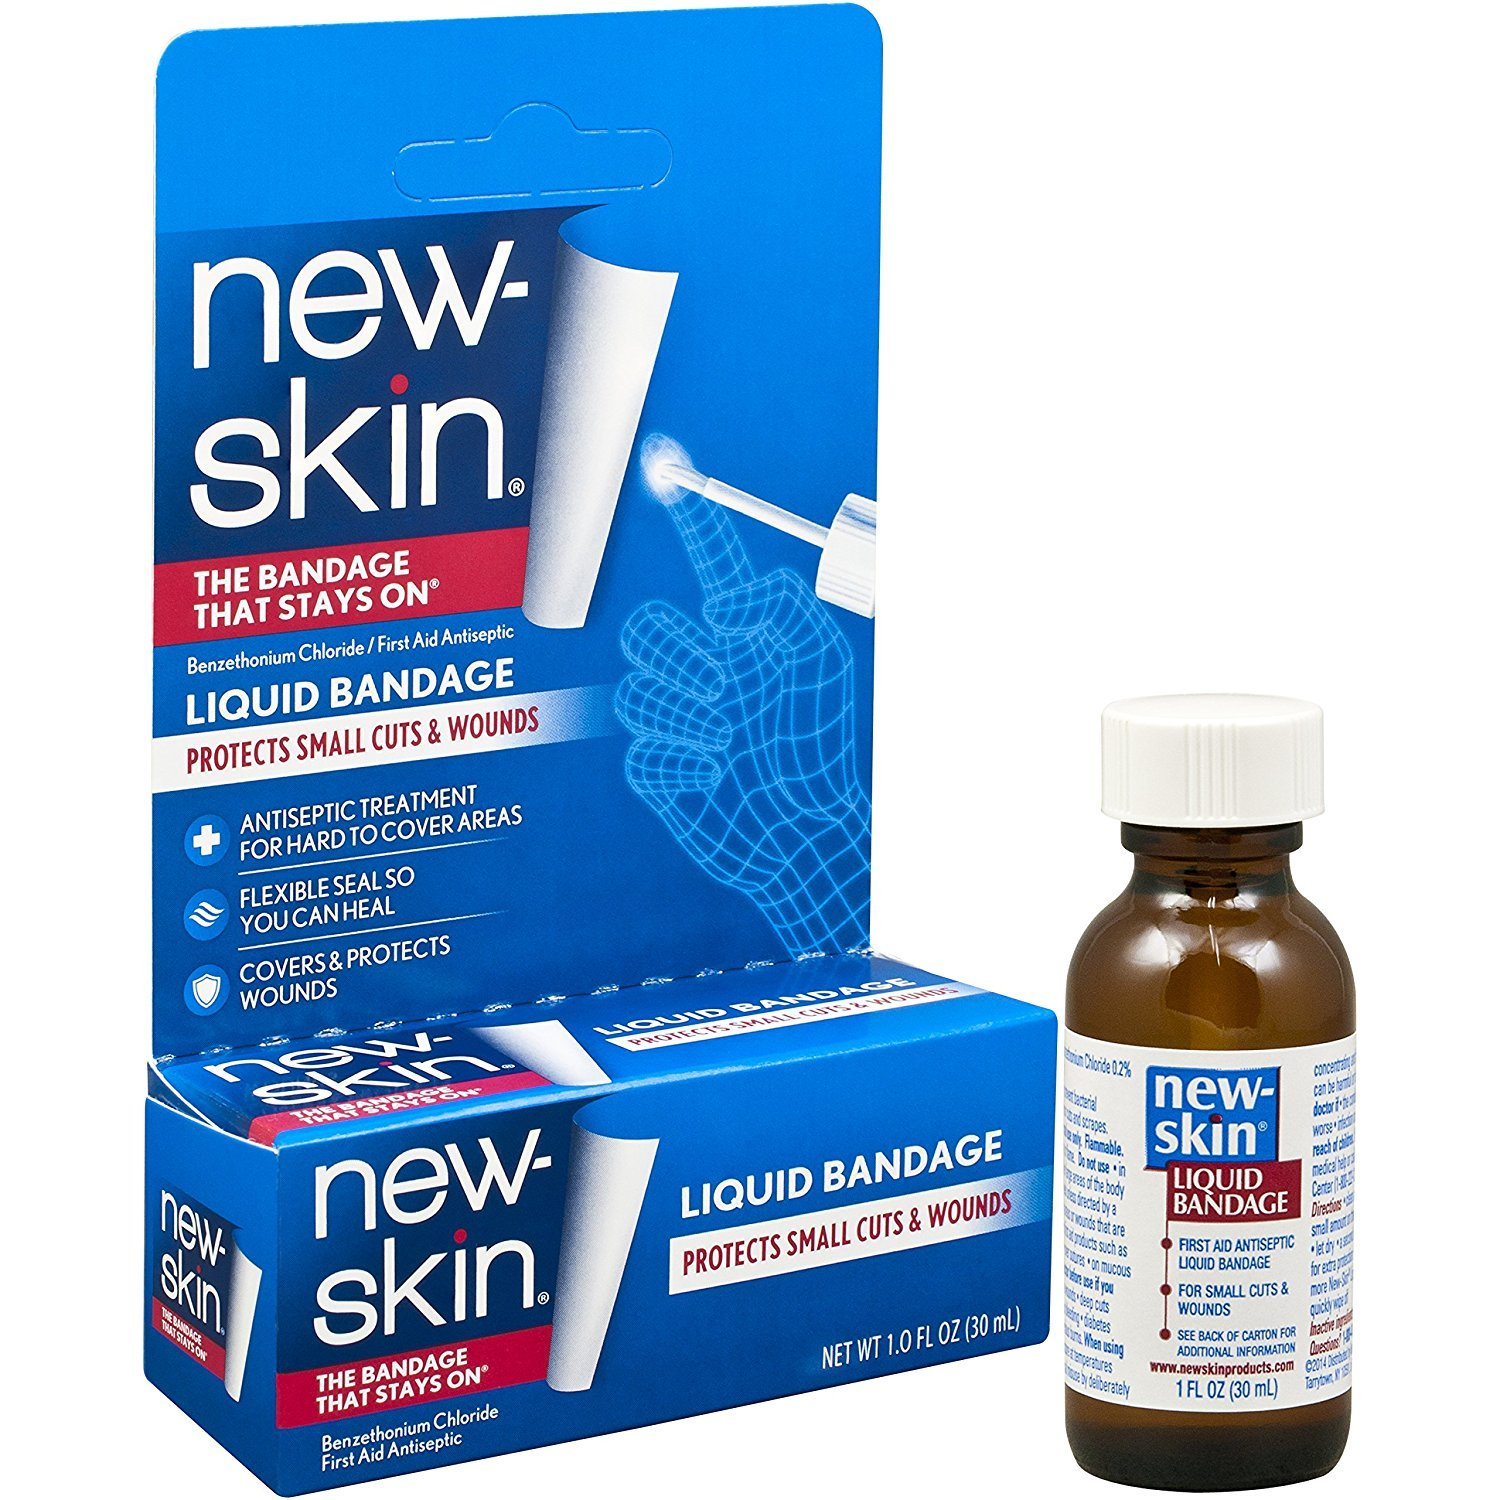 New-Skin Liquid Bandage 1.0 FL OZ, Liquid Bandage for Hard-to-Cover Cuts, Scrapes, Wounds, Calluses, and Dry, Cracked Skin (.4 Pack(1 FL OZ))